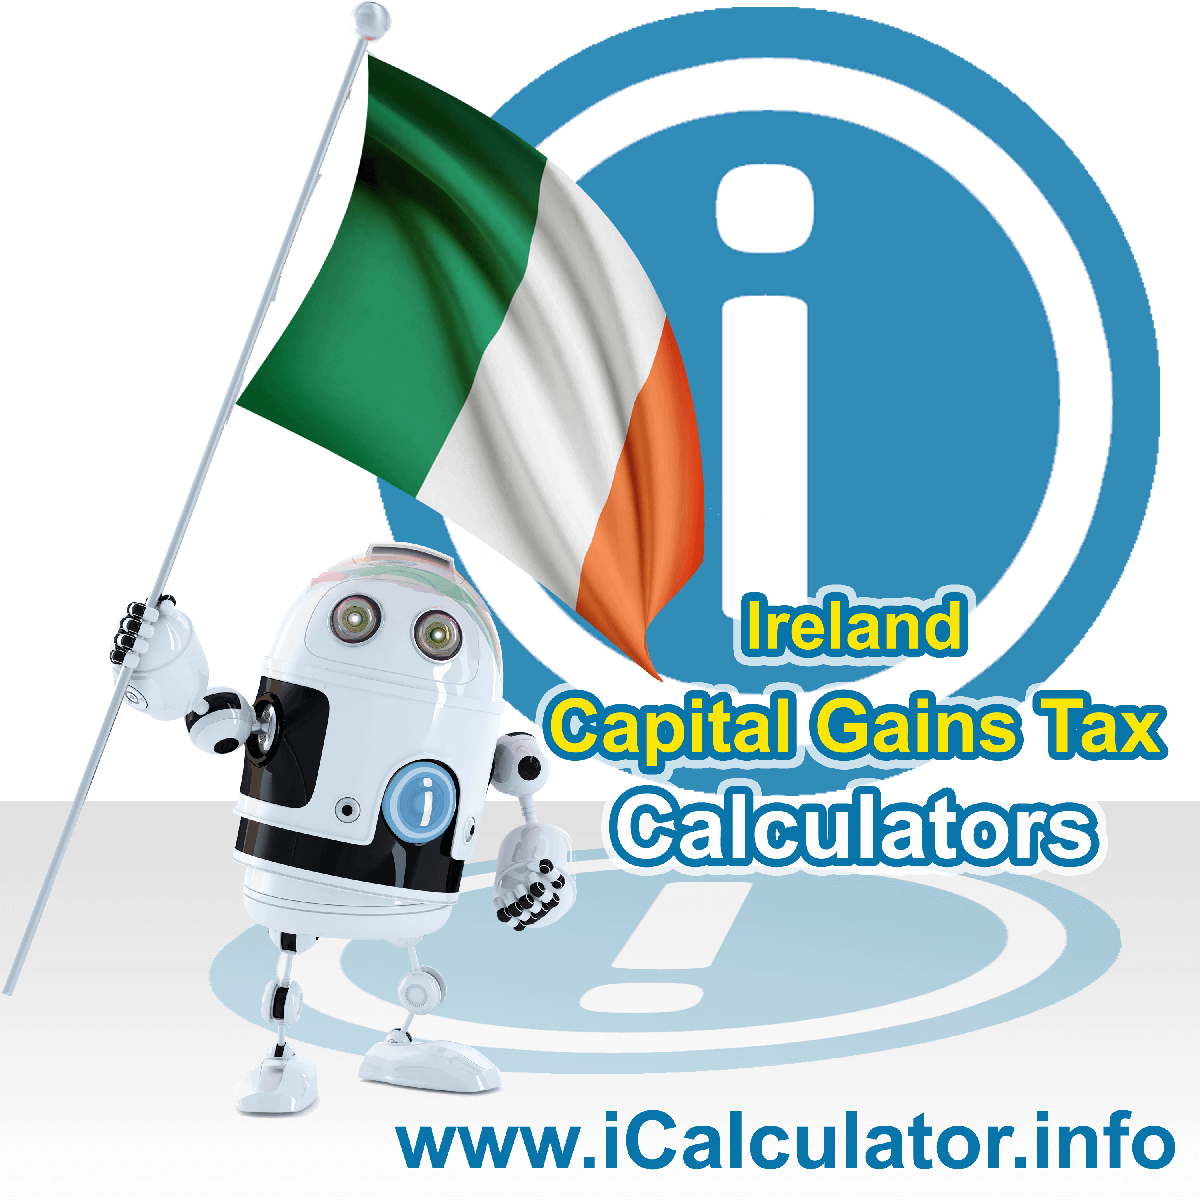 Ireland Capital Gains Tax Calculator. This image shows the Ireland flag and information relating to the capital gains tax rate formula used for calculating Capital Gains Tax in Ireland using the Ireland Capital Gains Tax Calculator in 2020